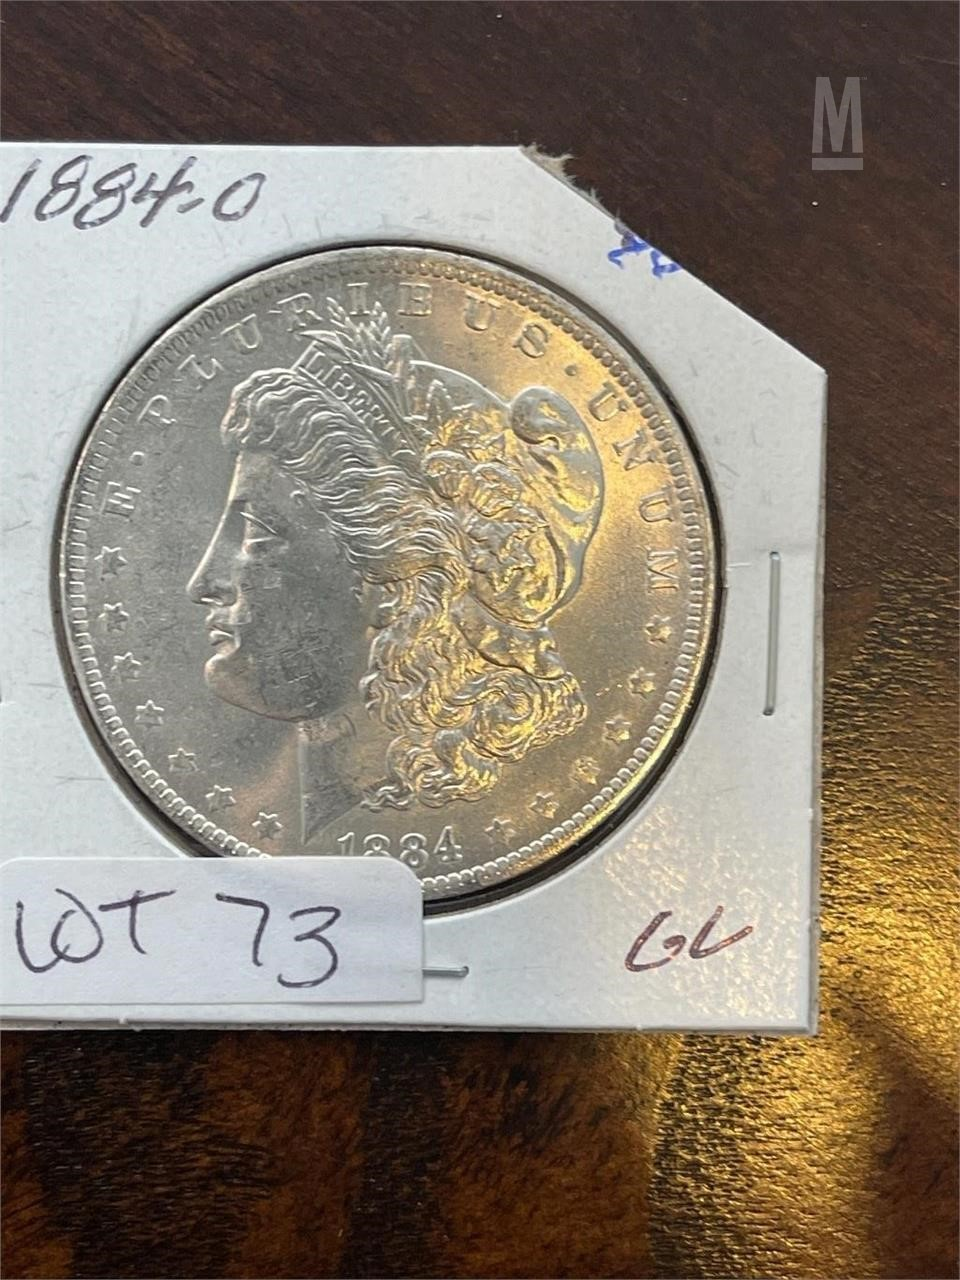 1884 O Morgan Silver Dollar Other Items For Sale 4 Listings Marketbook Ca Page 1 Of 1